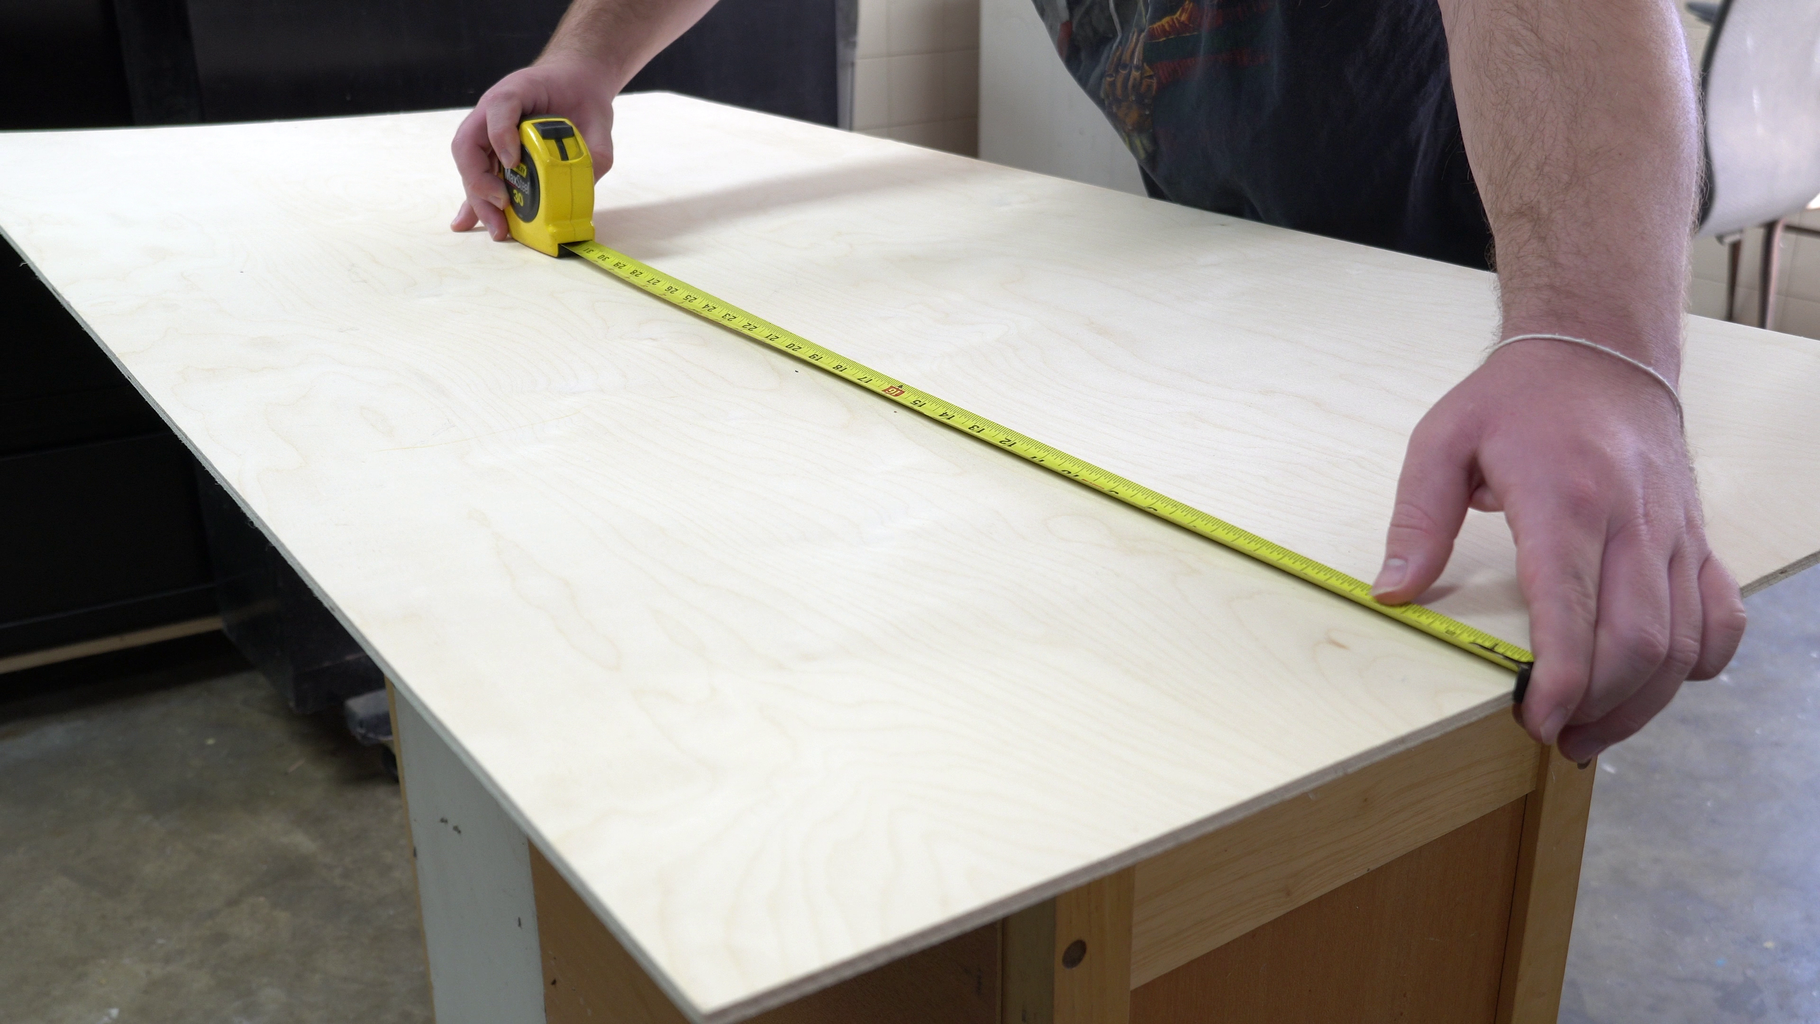 Measure, Cut, and Sand